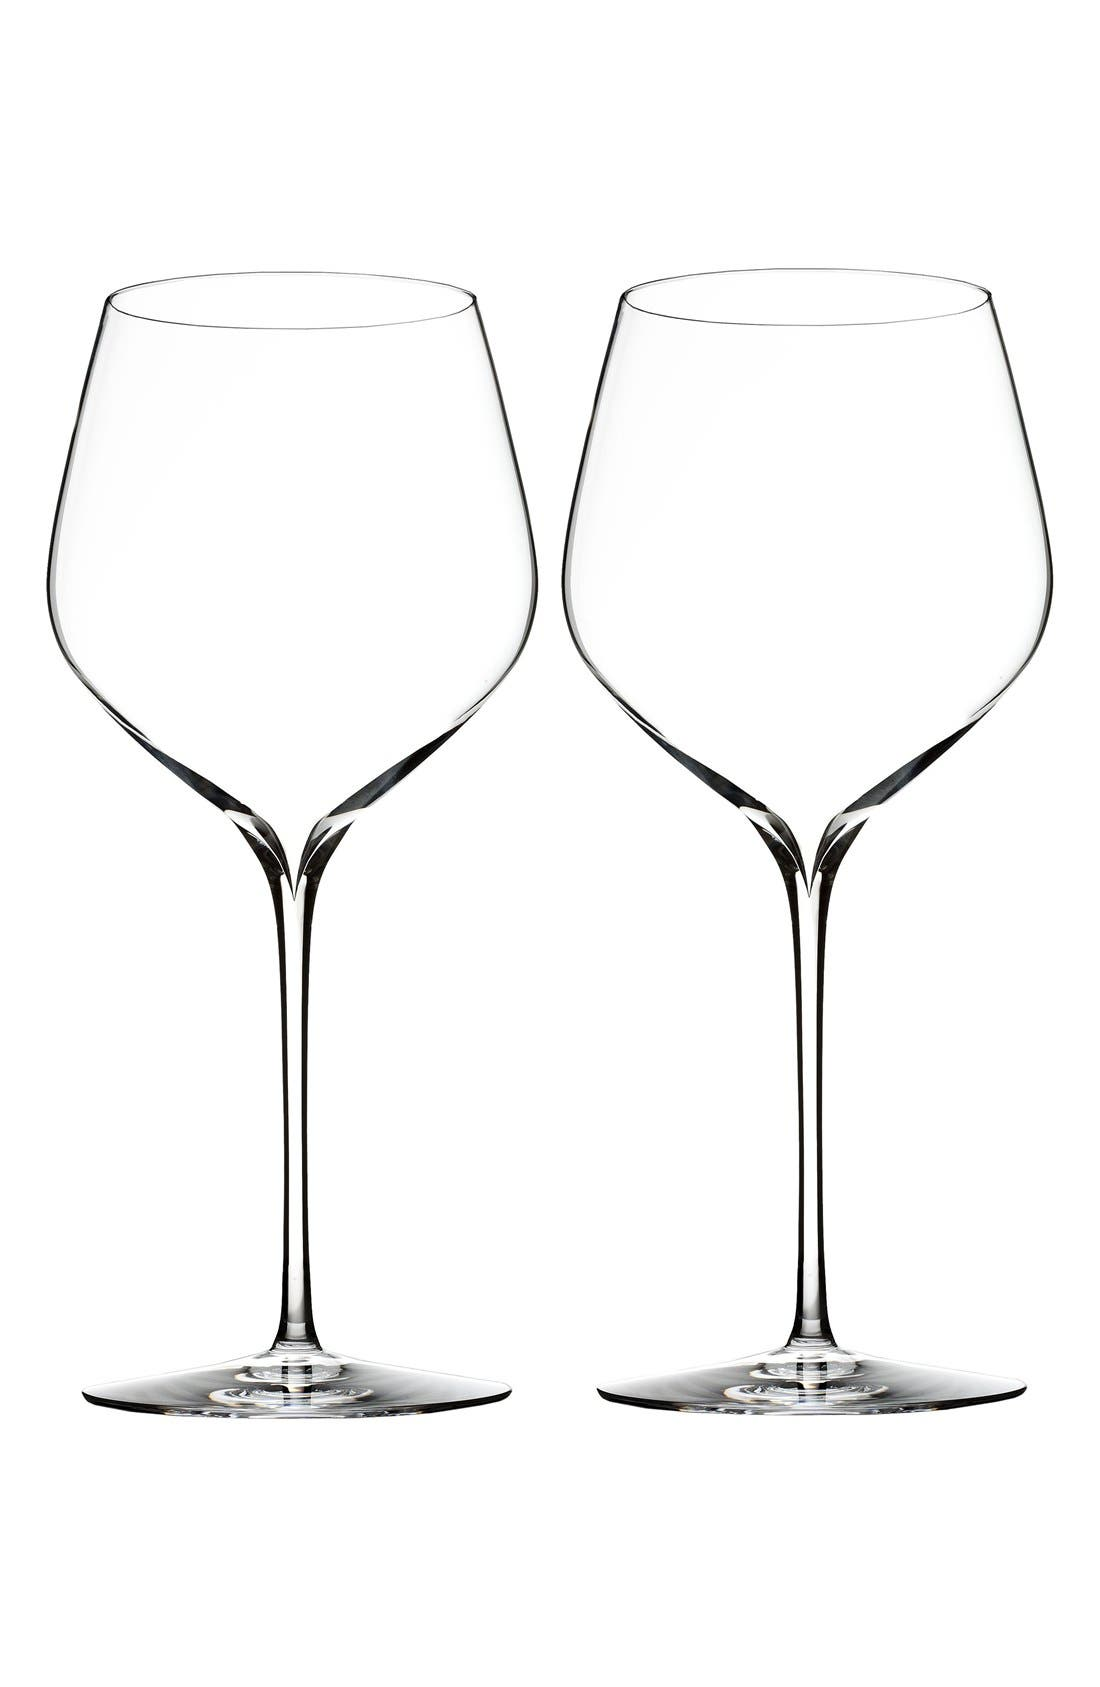 Waterford 'Elegance' Fine Crystal Cabernet Sauvignon Glasses (Set of 2)